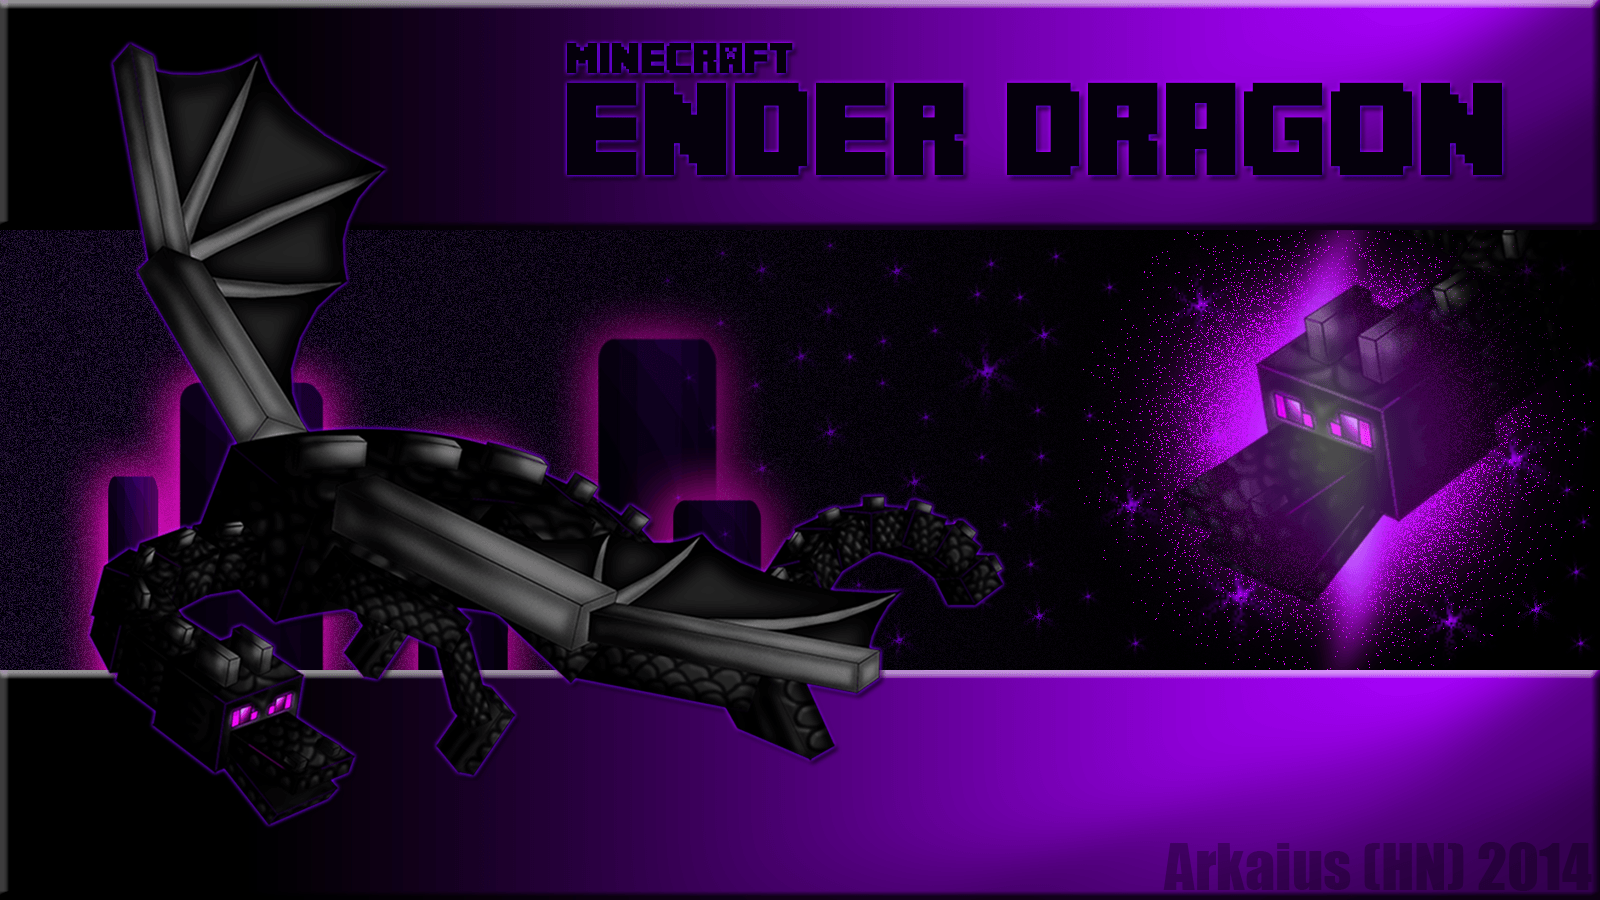 Minecraft Ender Dragon Wallpapers Top Free Minecraft Ender Dragon Backgrounds Wallpaperaccess